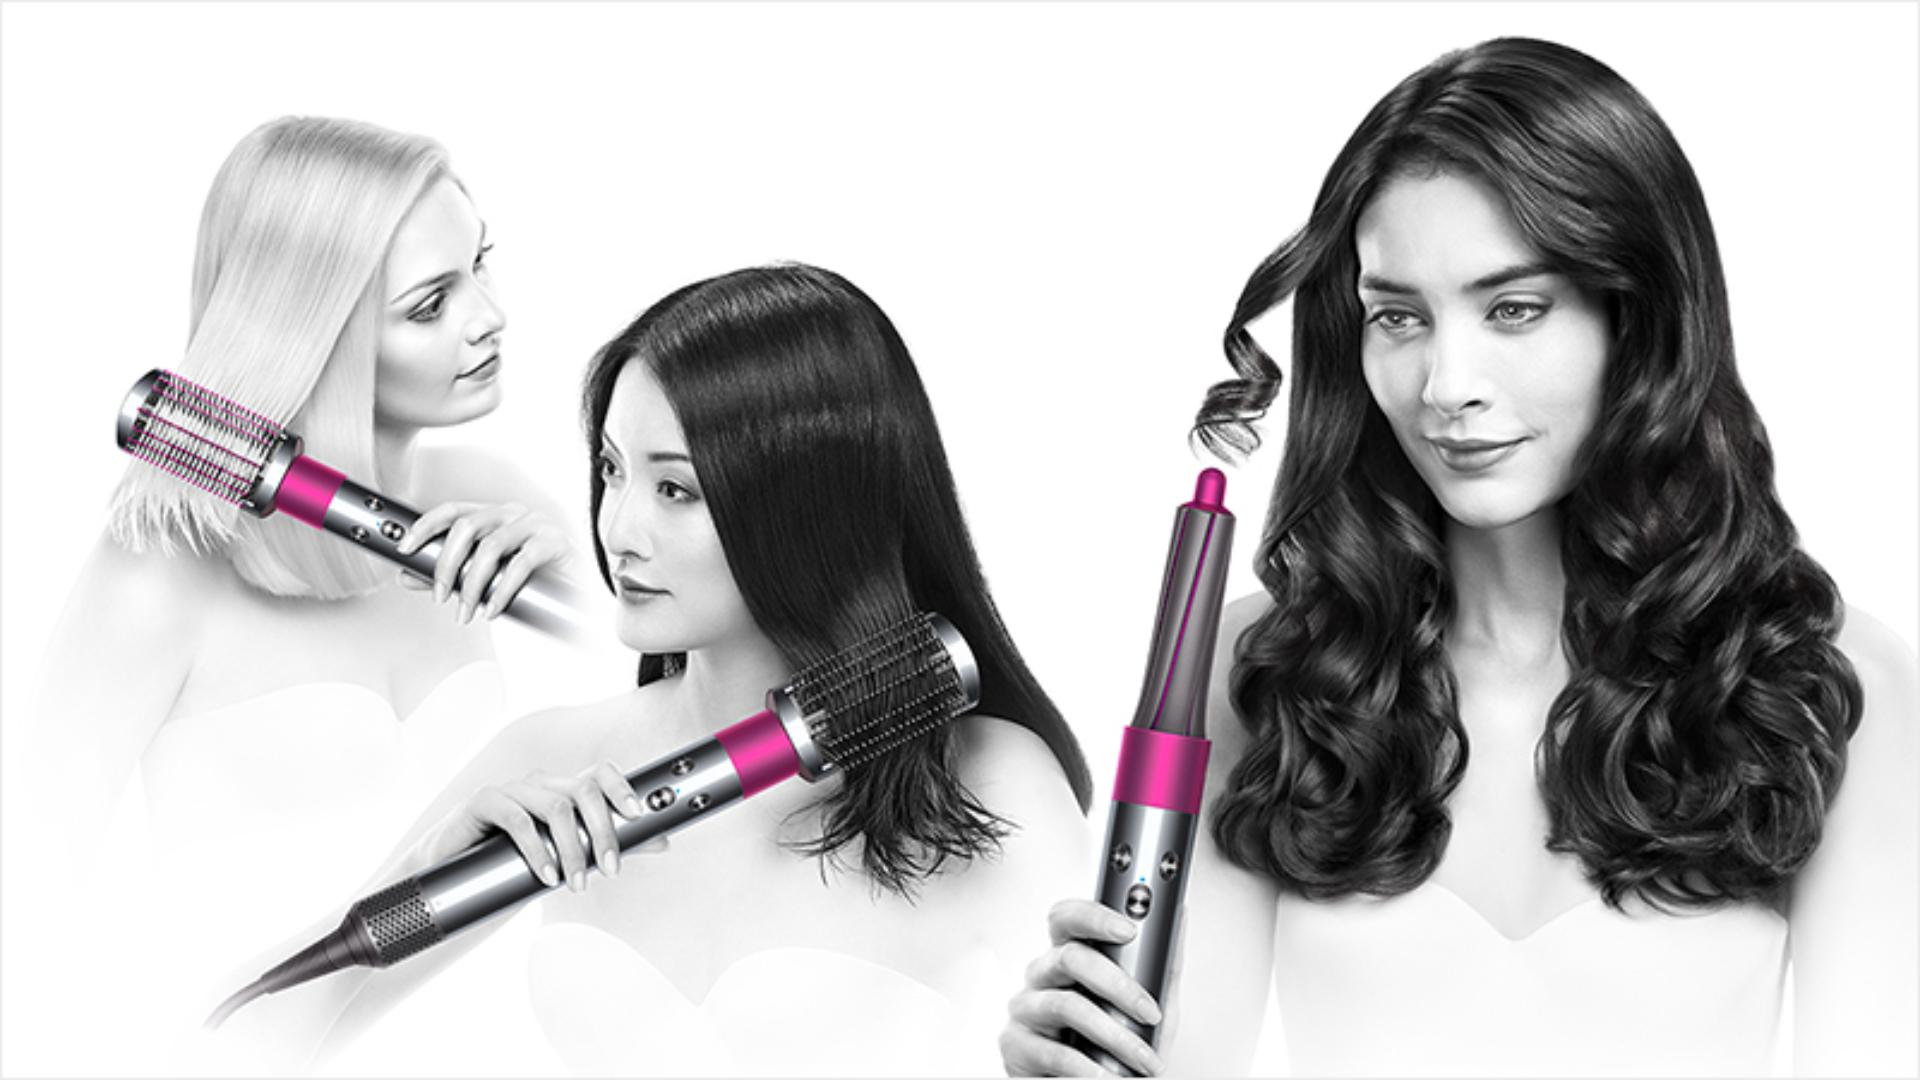 Three Dyson models using the Dyson Airwrap™ styler